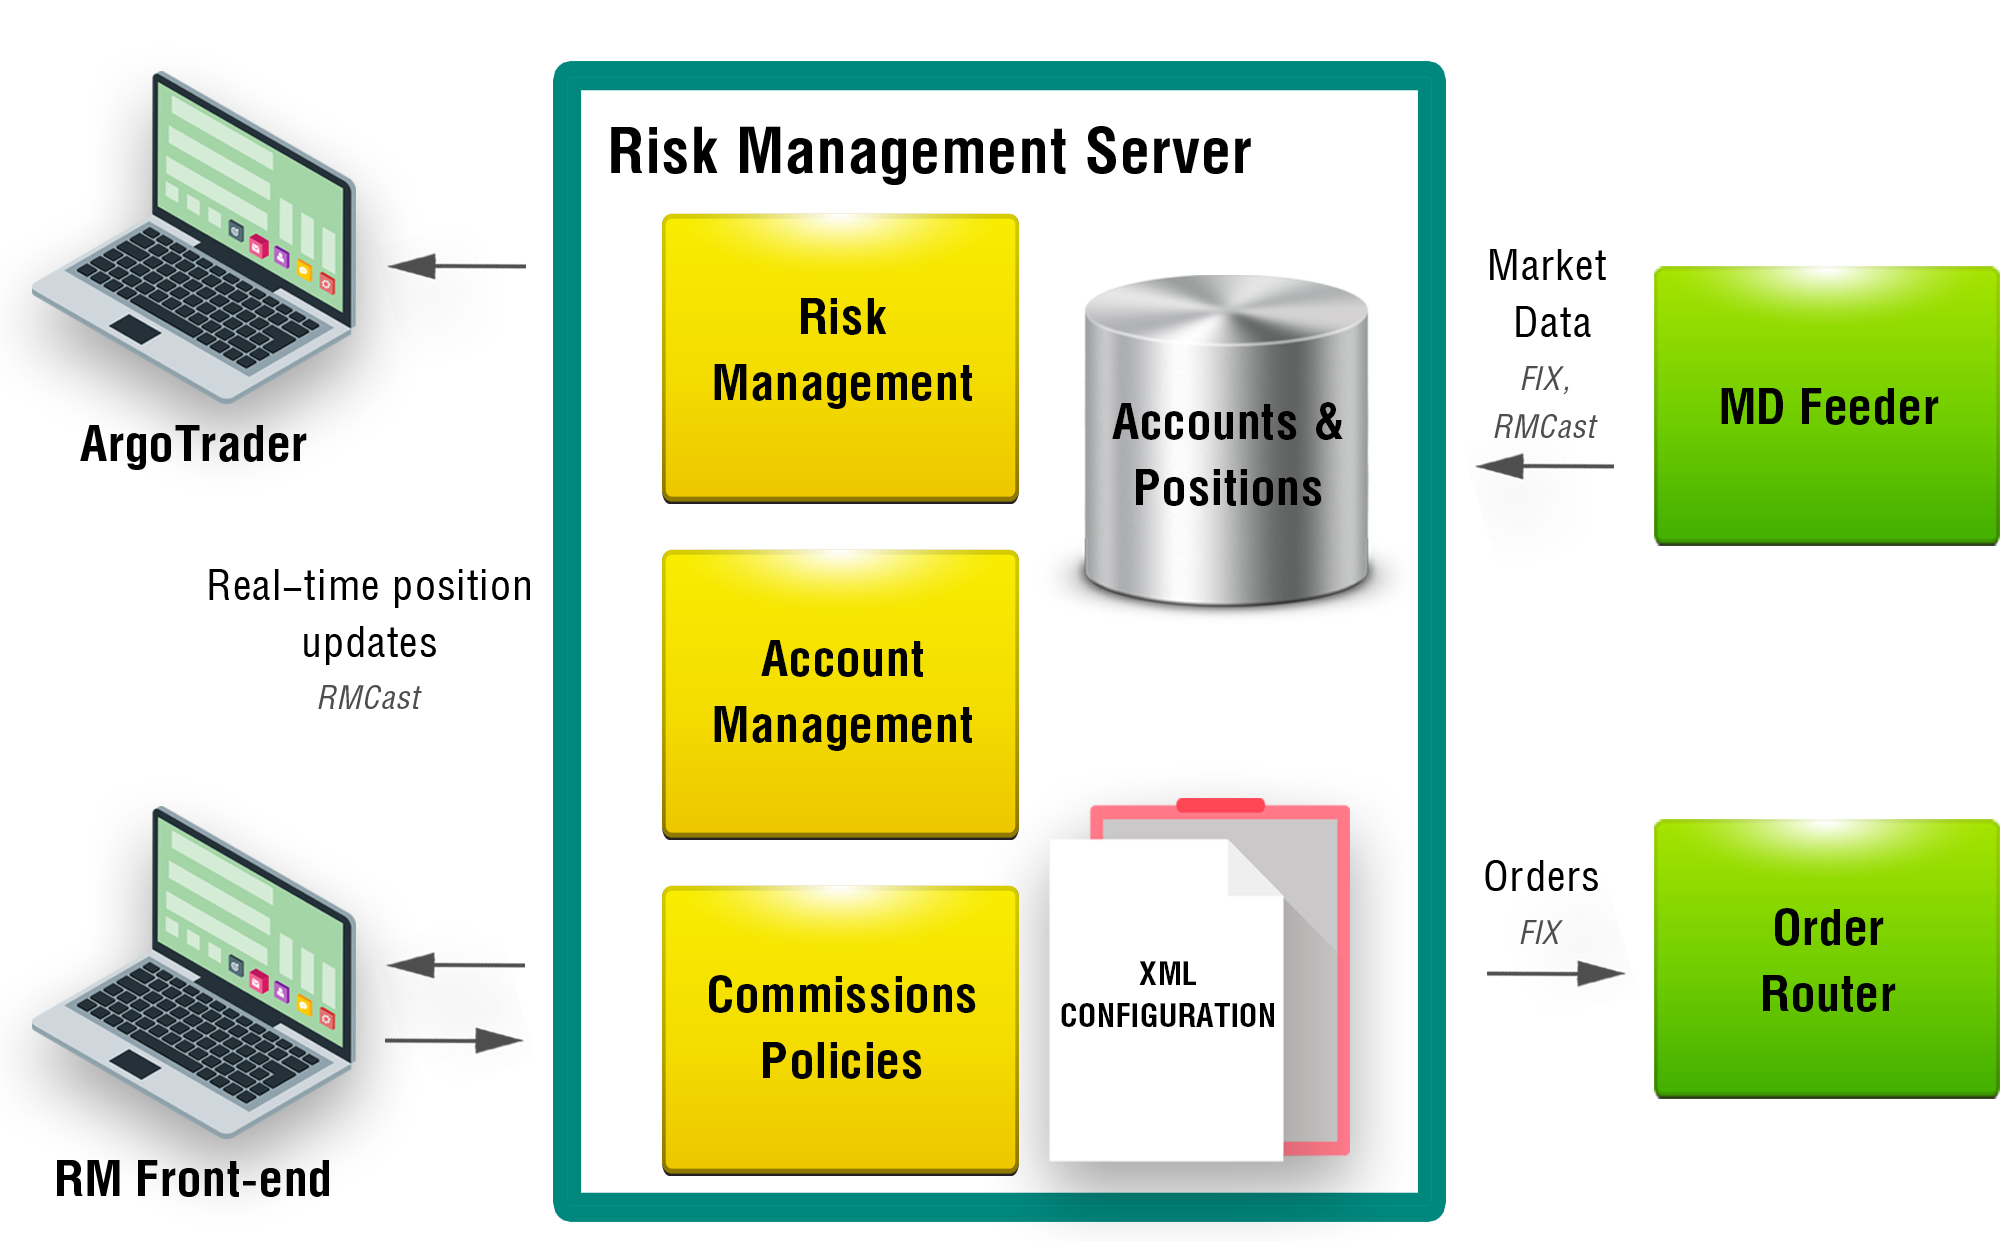 Risk Management Server - Diagram